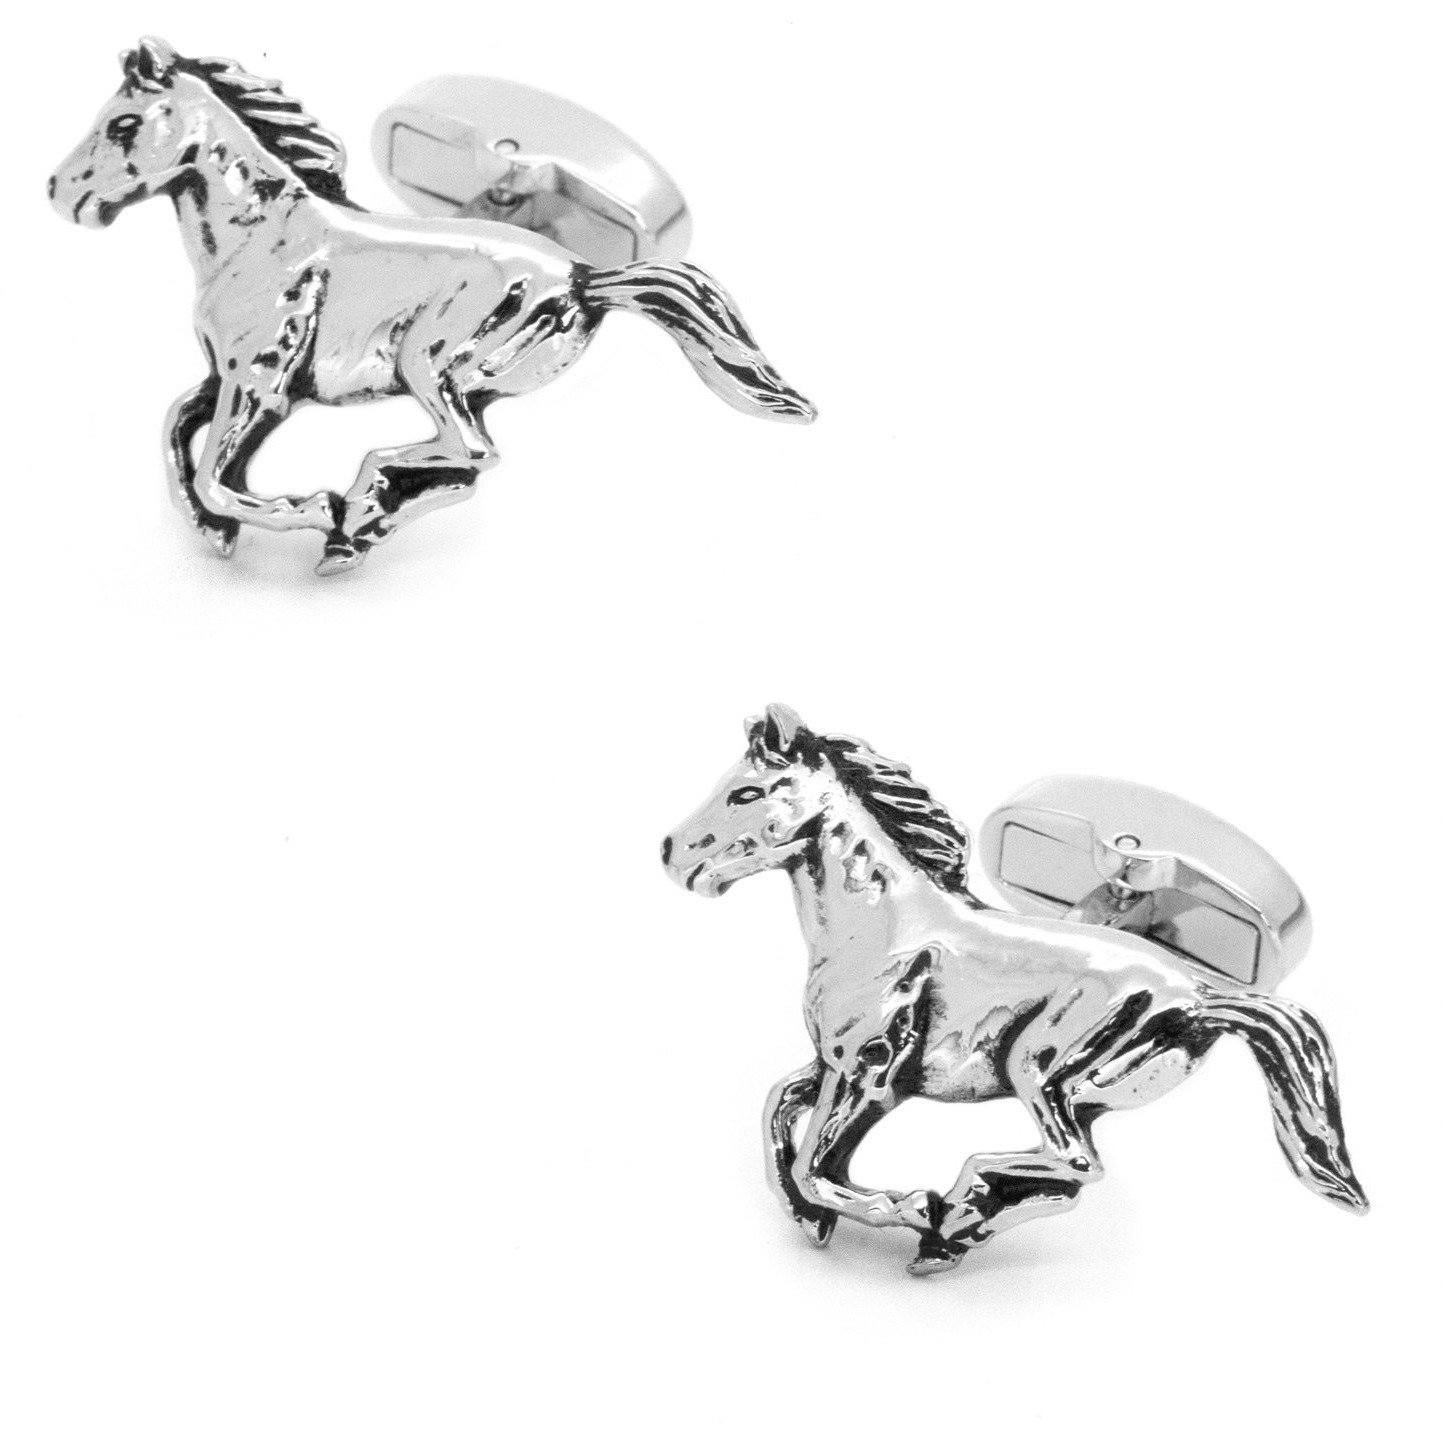 Silver Galloping Horses Cufflinks, Novelty Cufflinks, Cuffed.com.au, CL7006, $29.00